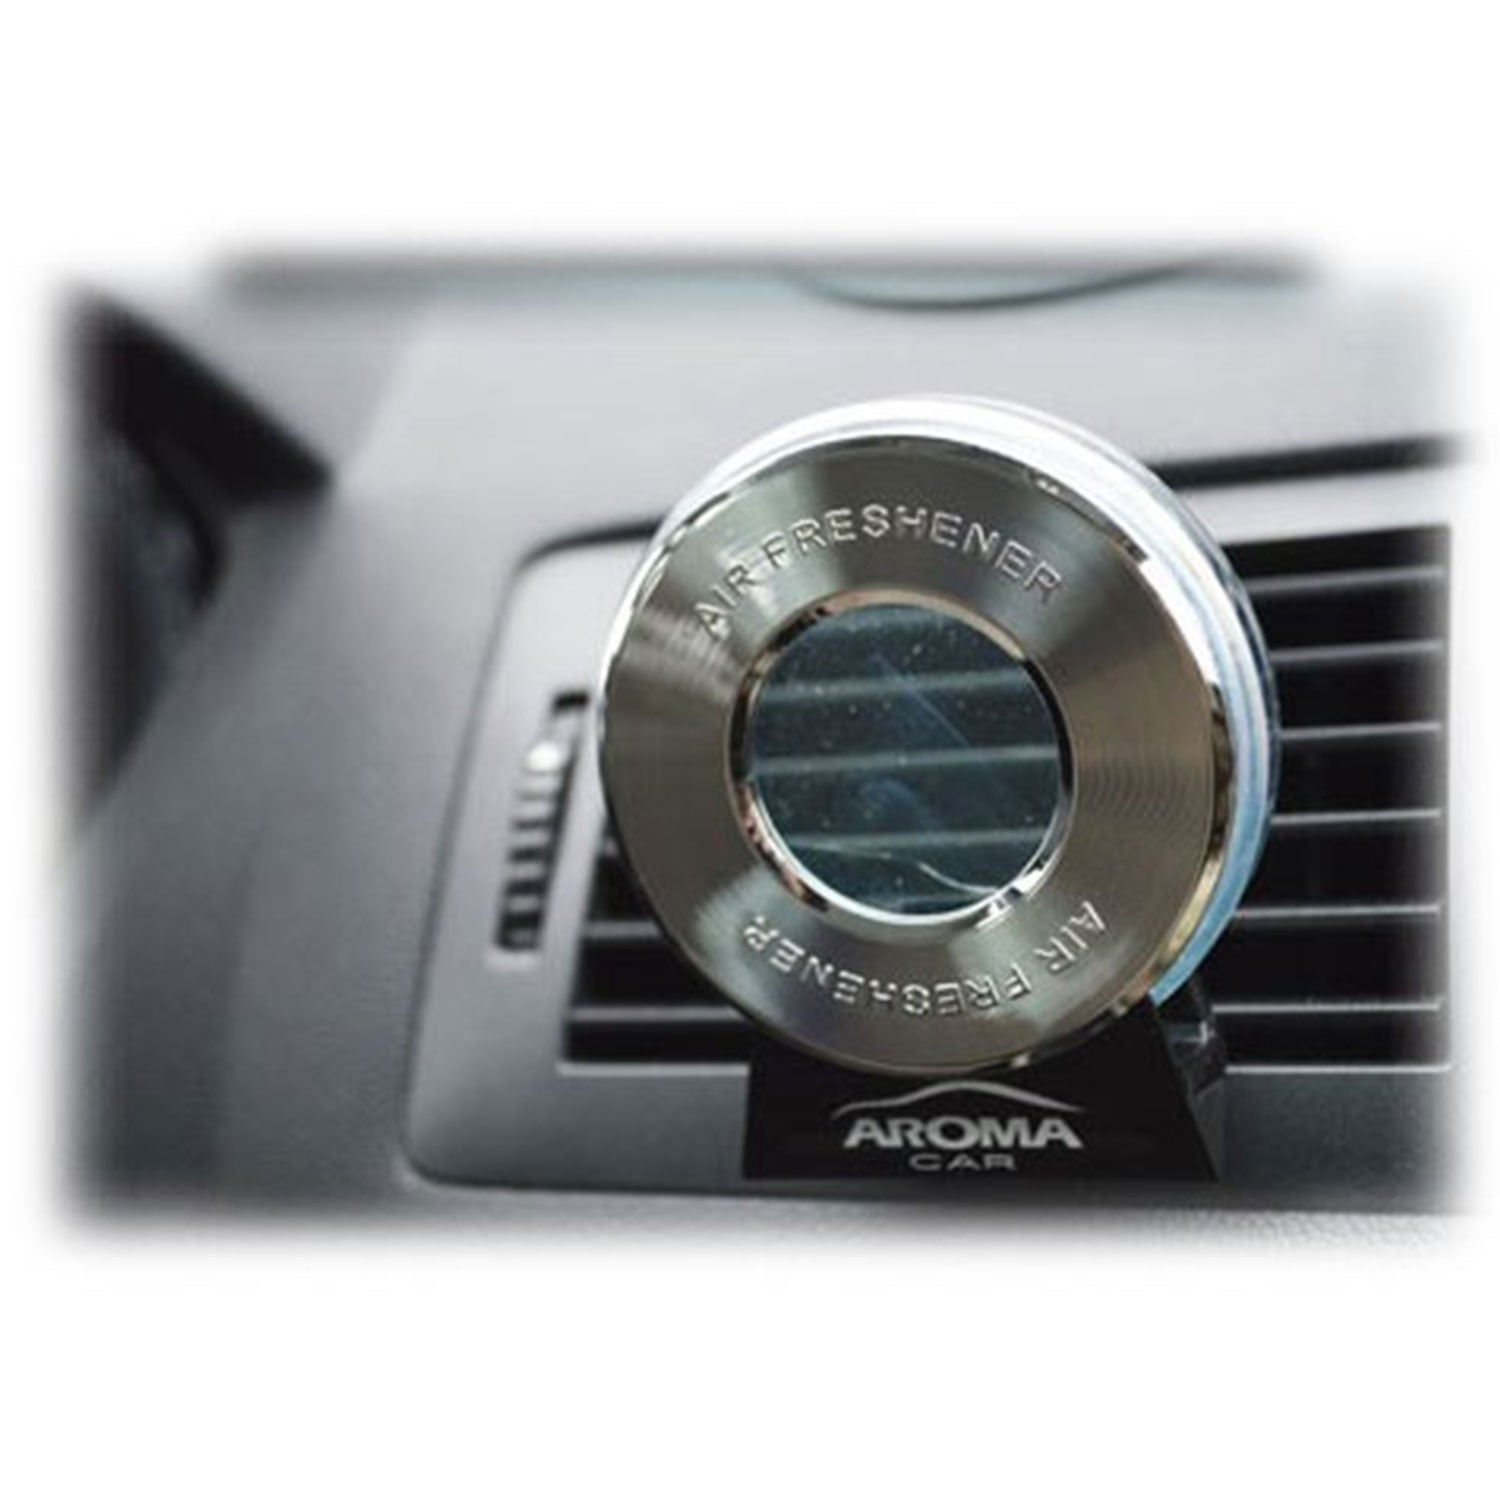 Aroma Disc Car Vent Air Freshener Car Home fice Air Freshener Long